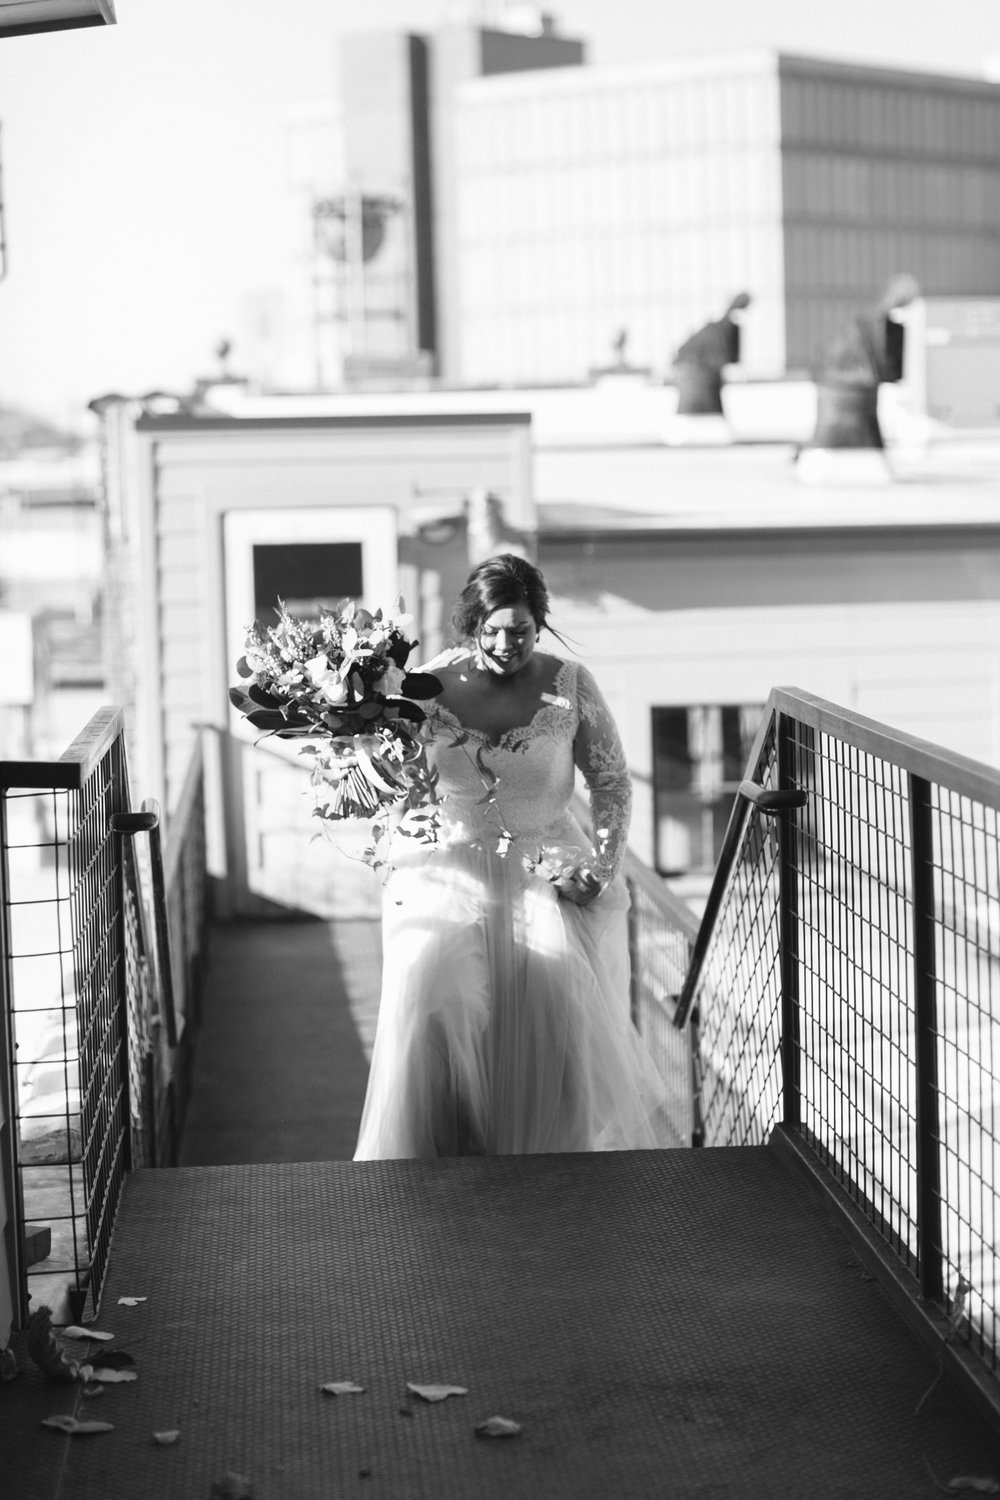 Lauren_Jeremy_Standard_Wedding_Knoxville_Abigail_Malone_Photography_FIlm-167.jpg